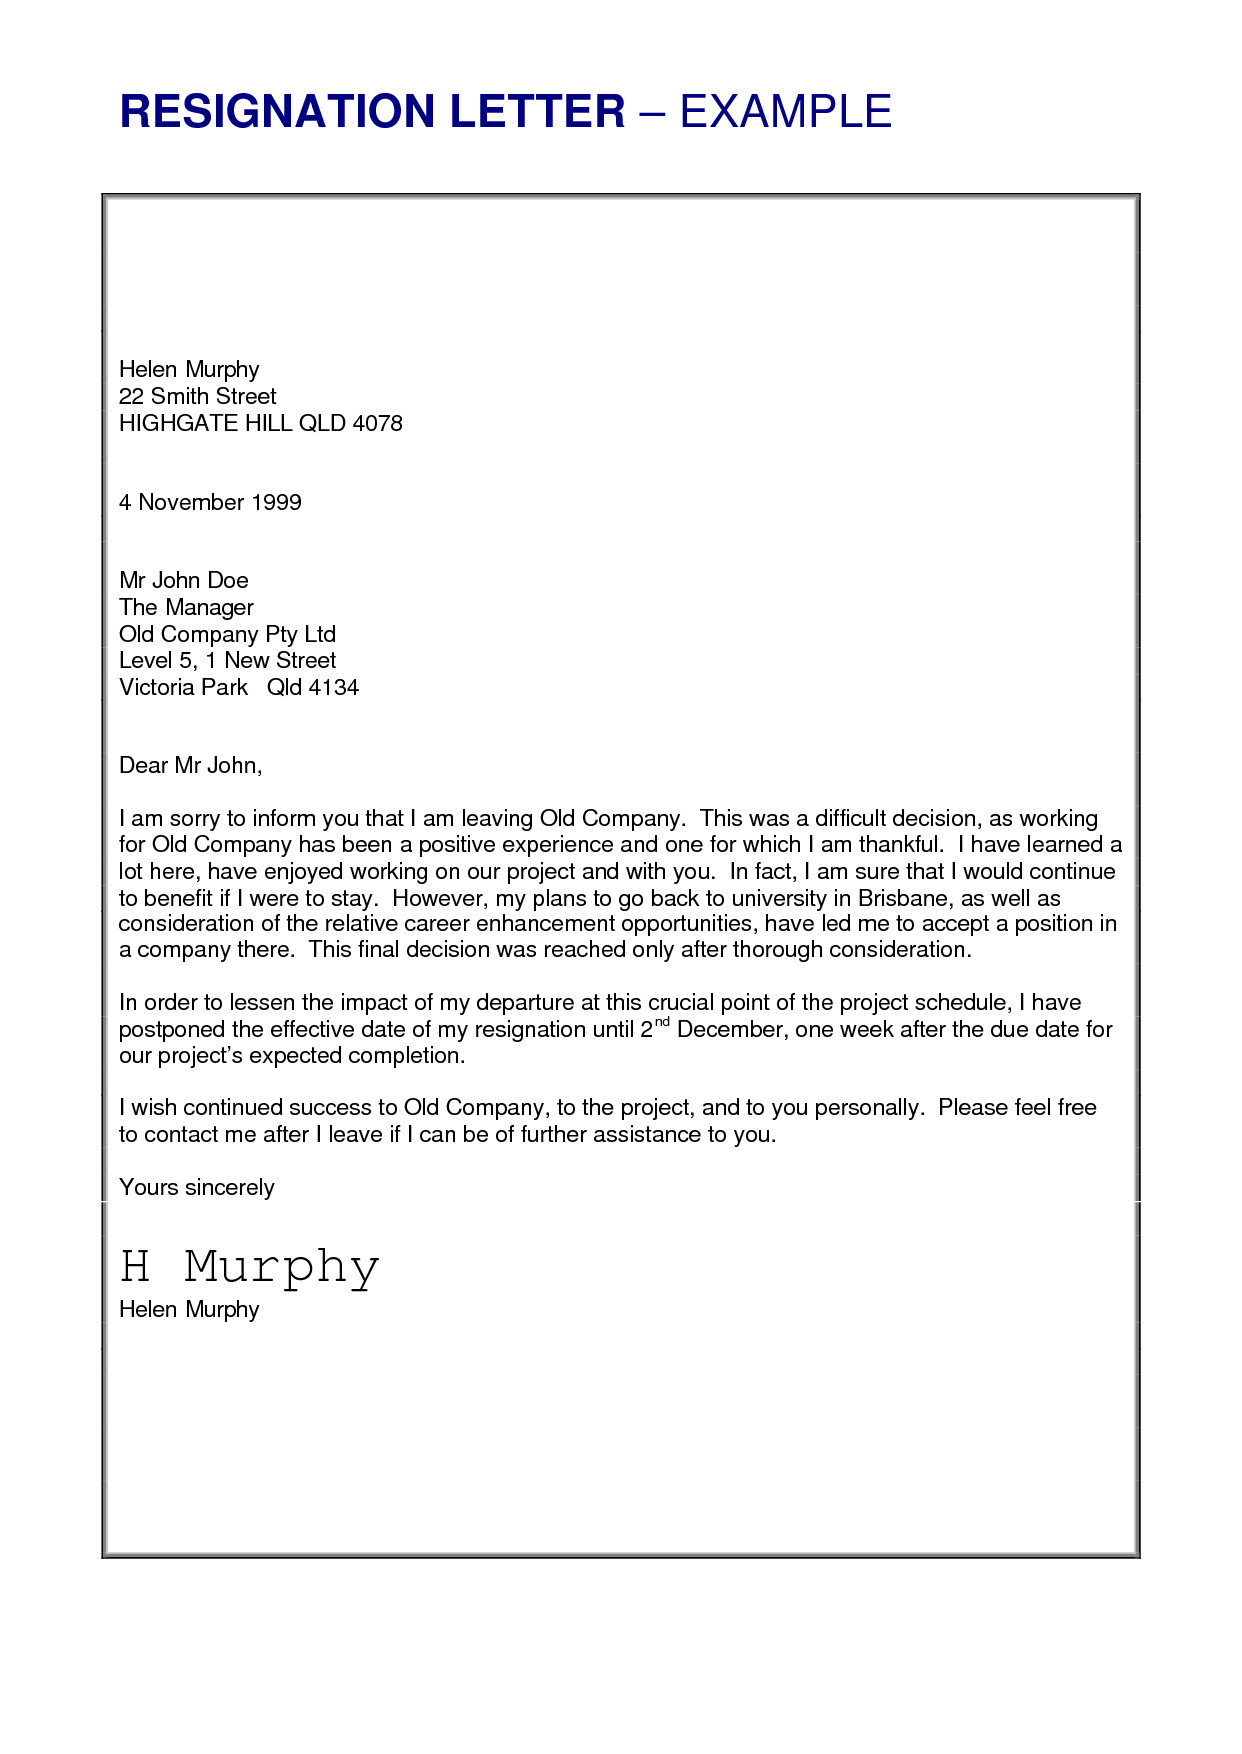 Letter Of Resignation Template Word Job Resignation Letter Sample Loganun Blog